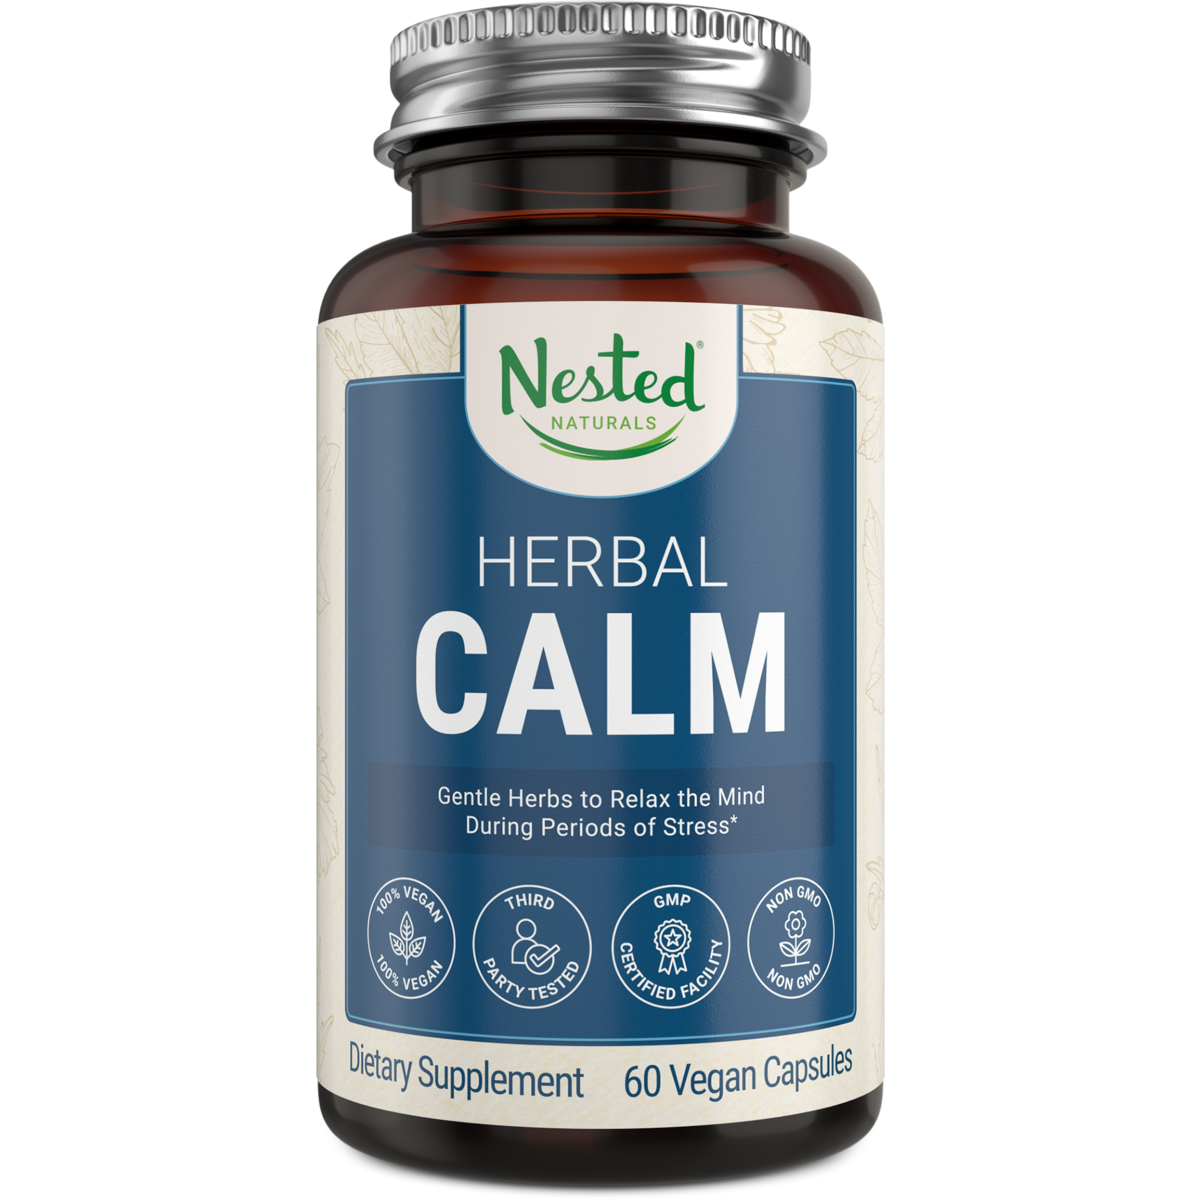 Nested Naturals Herbal Calm